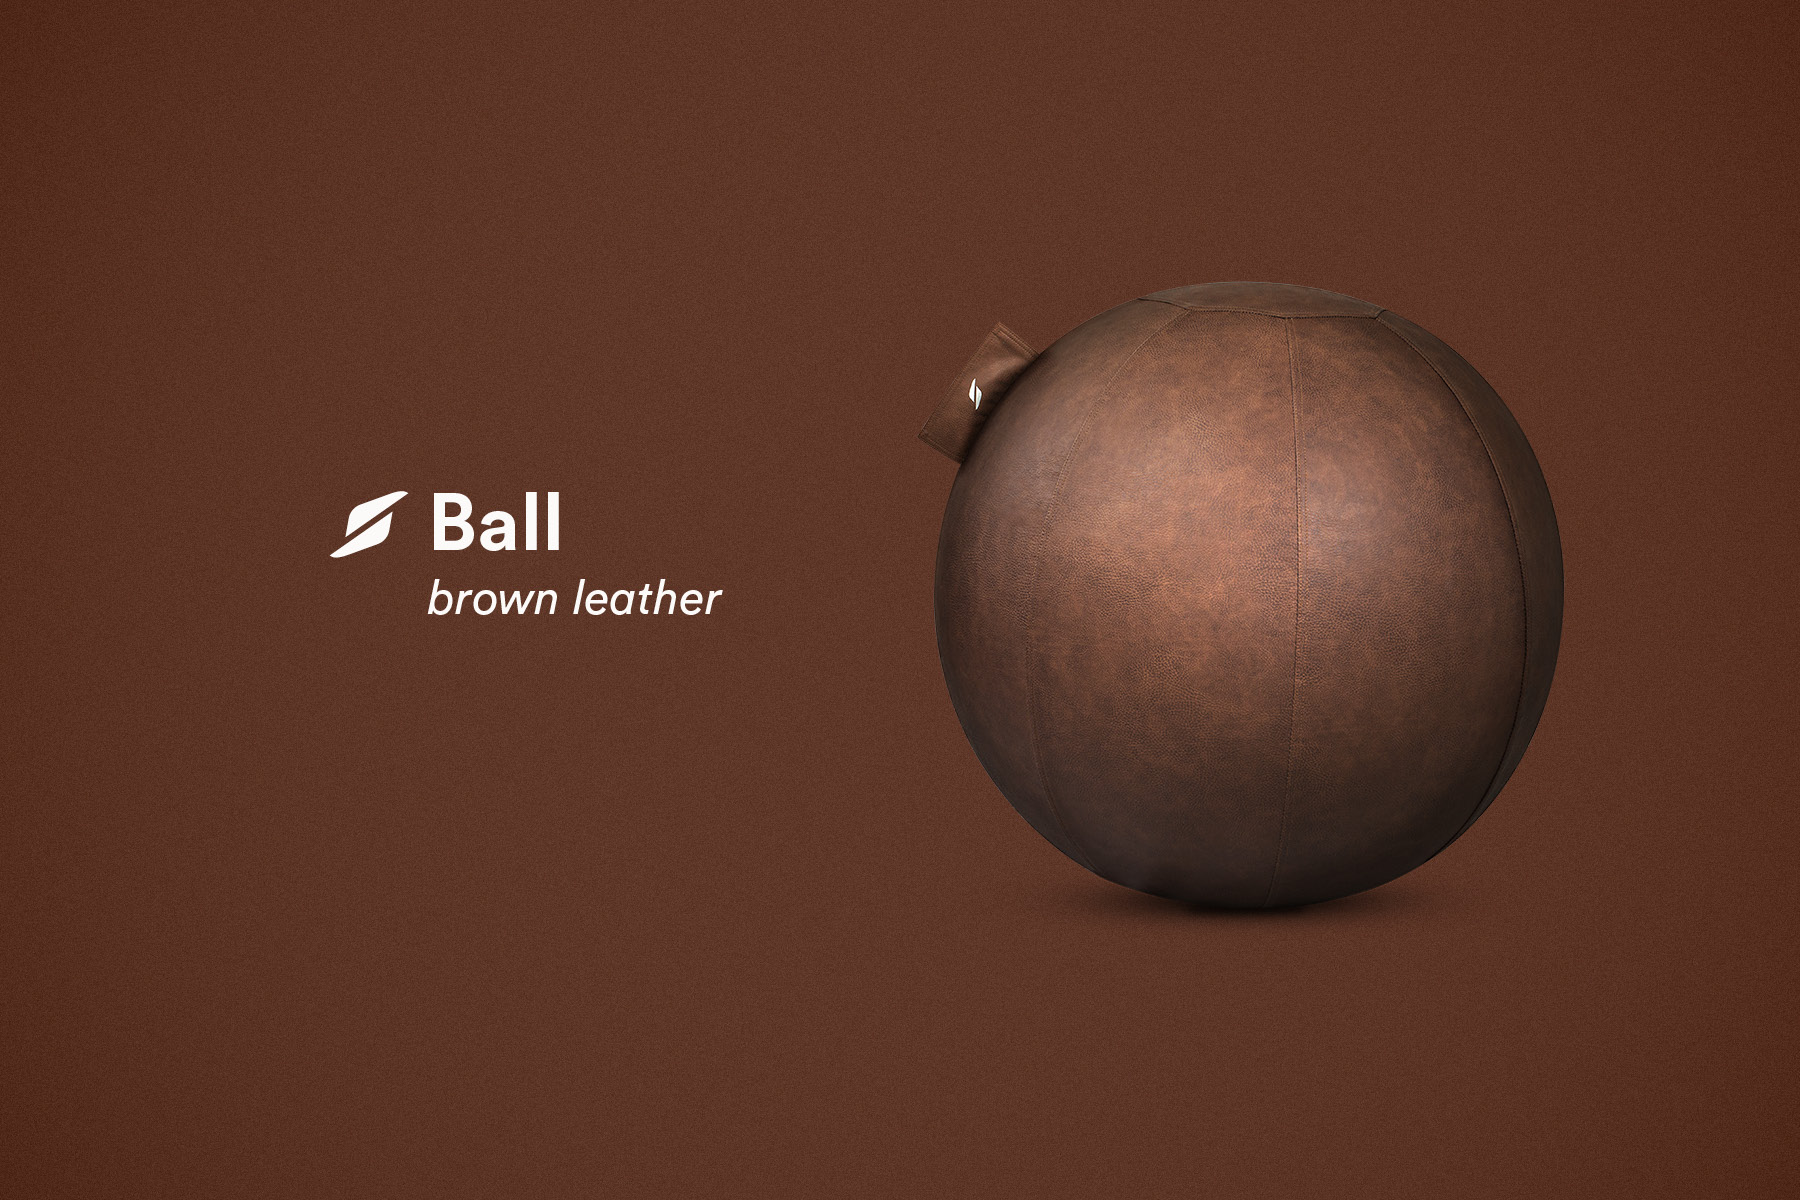 stryve-ball-industrial-design-product-lifestyle